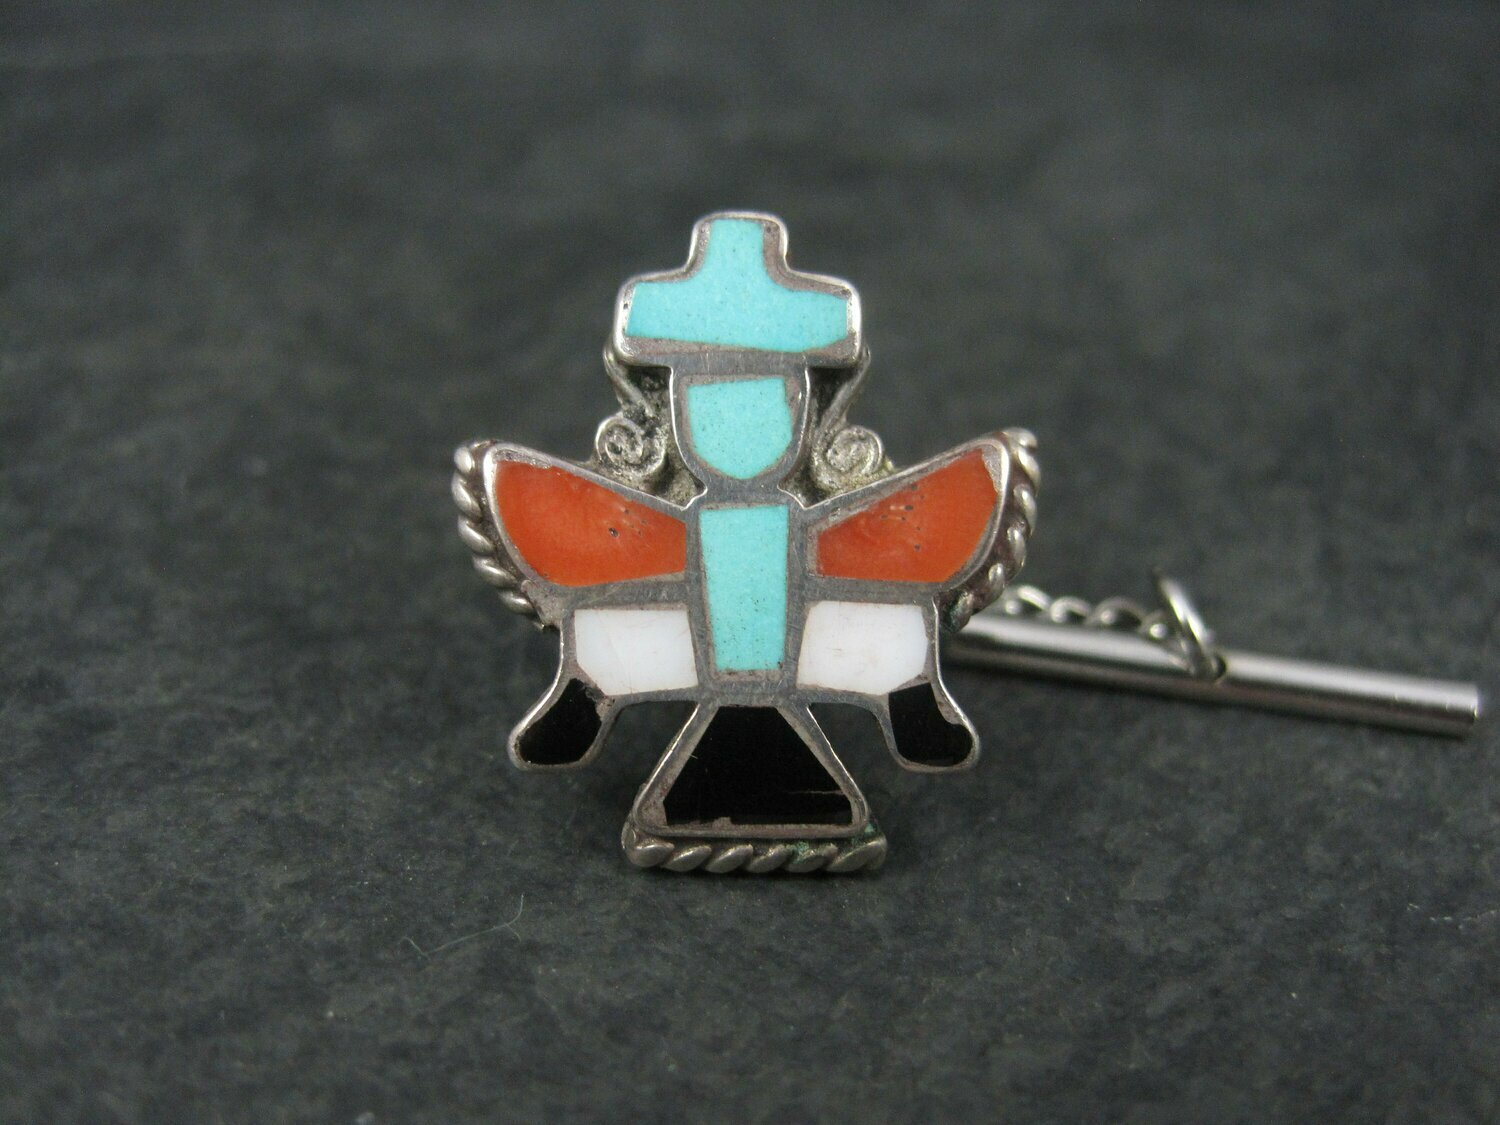 Vintage Sterling Turquoise Coral Inlay Knifewing Tie Tack